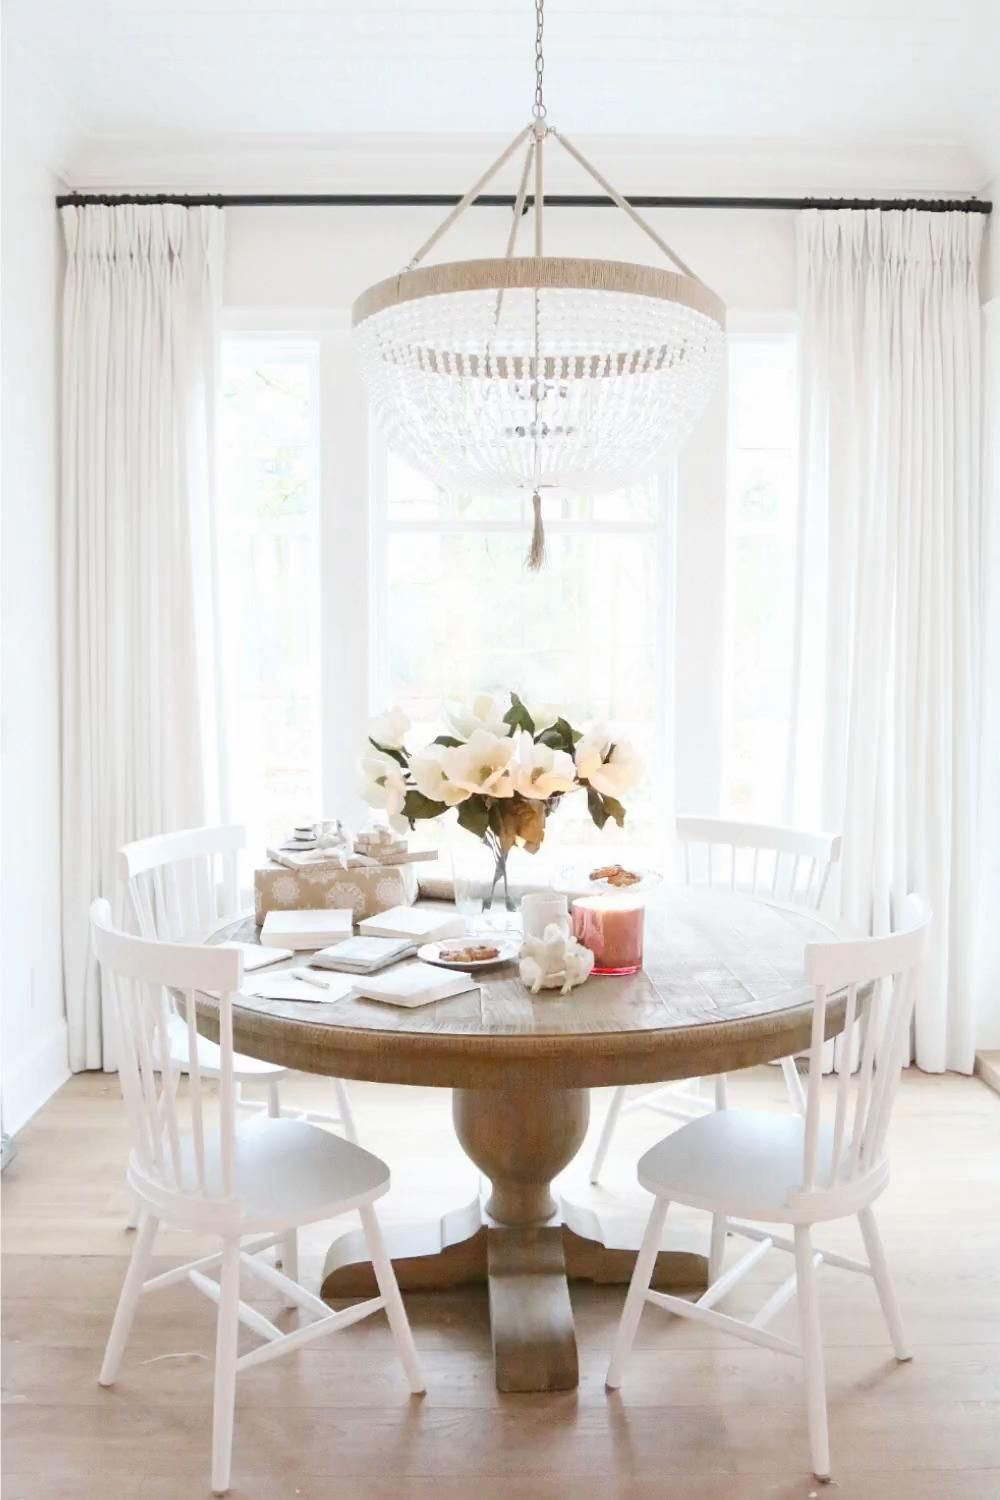 Q. Design Perfect Drapery and Shades